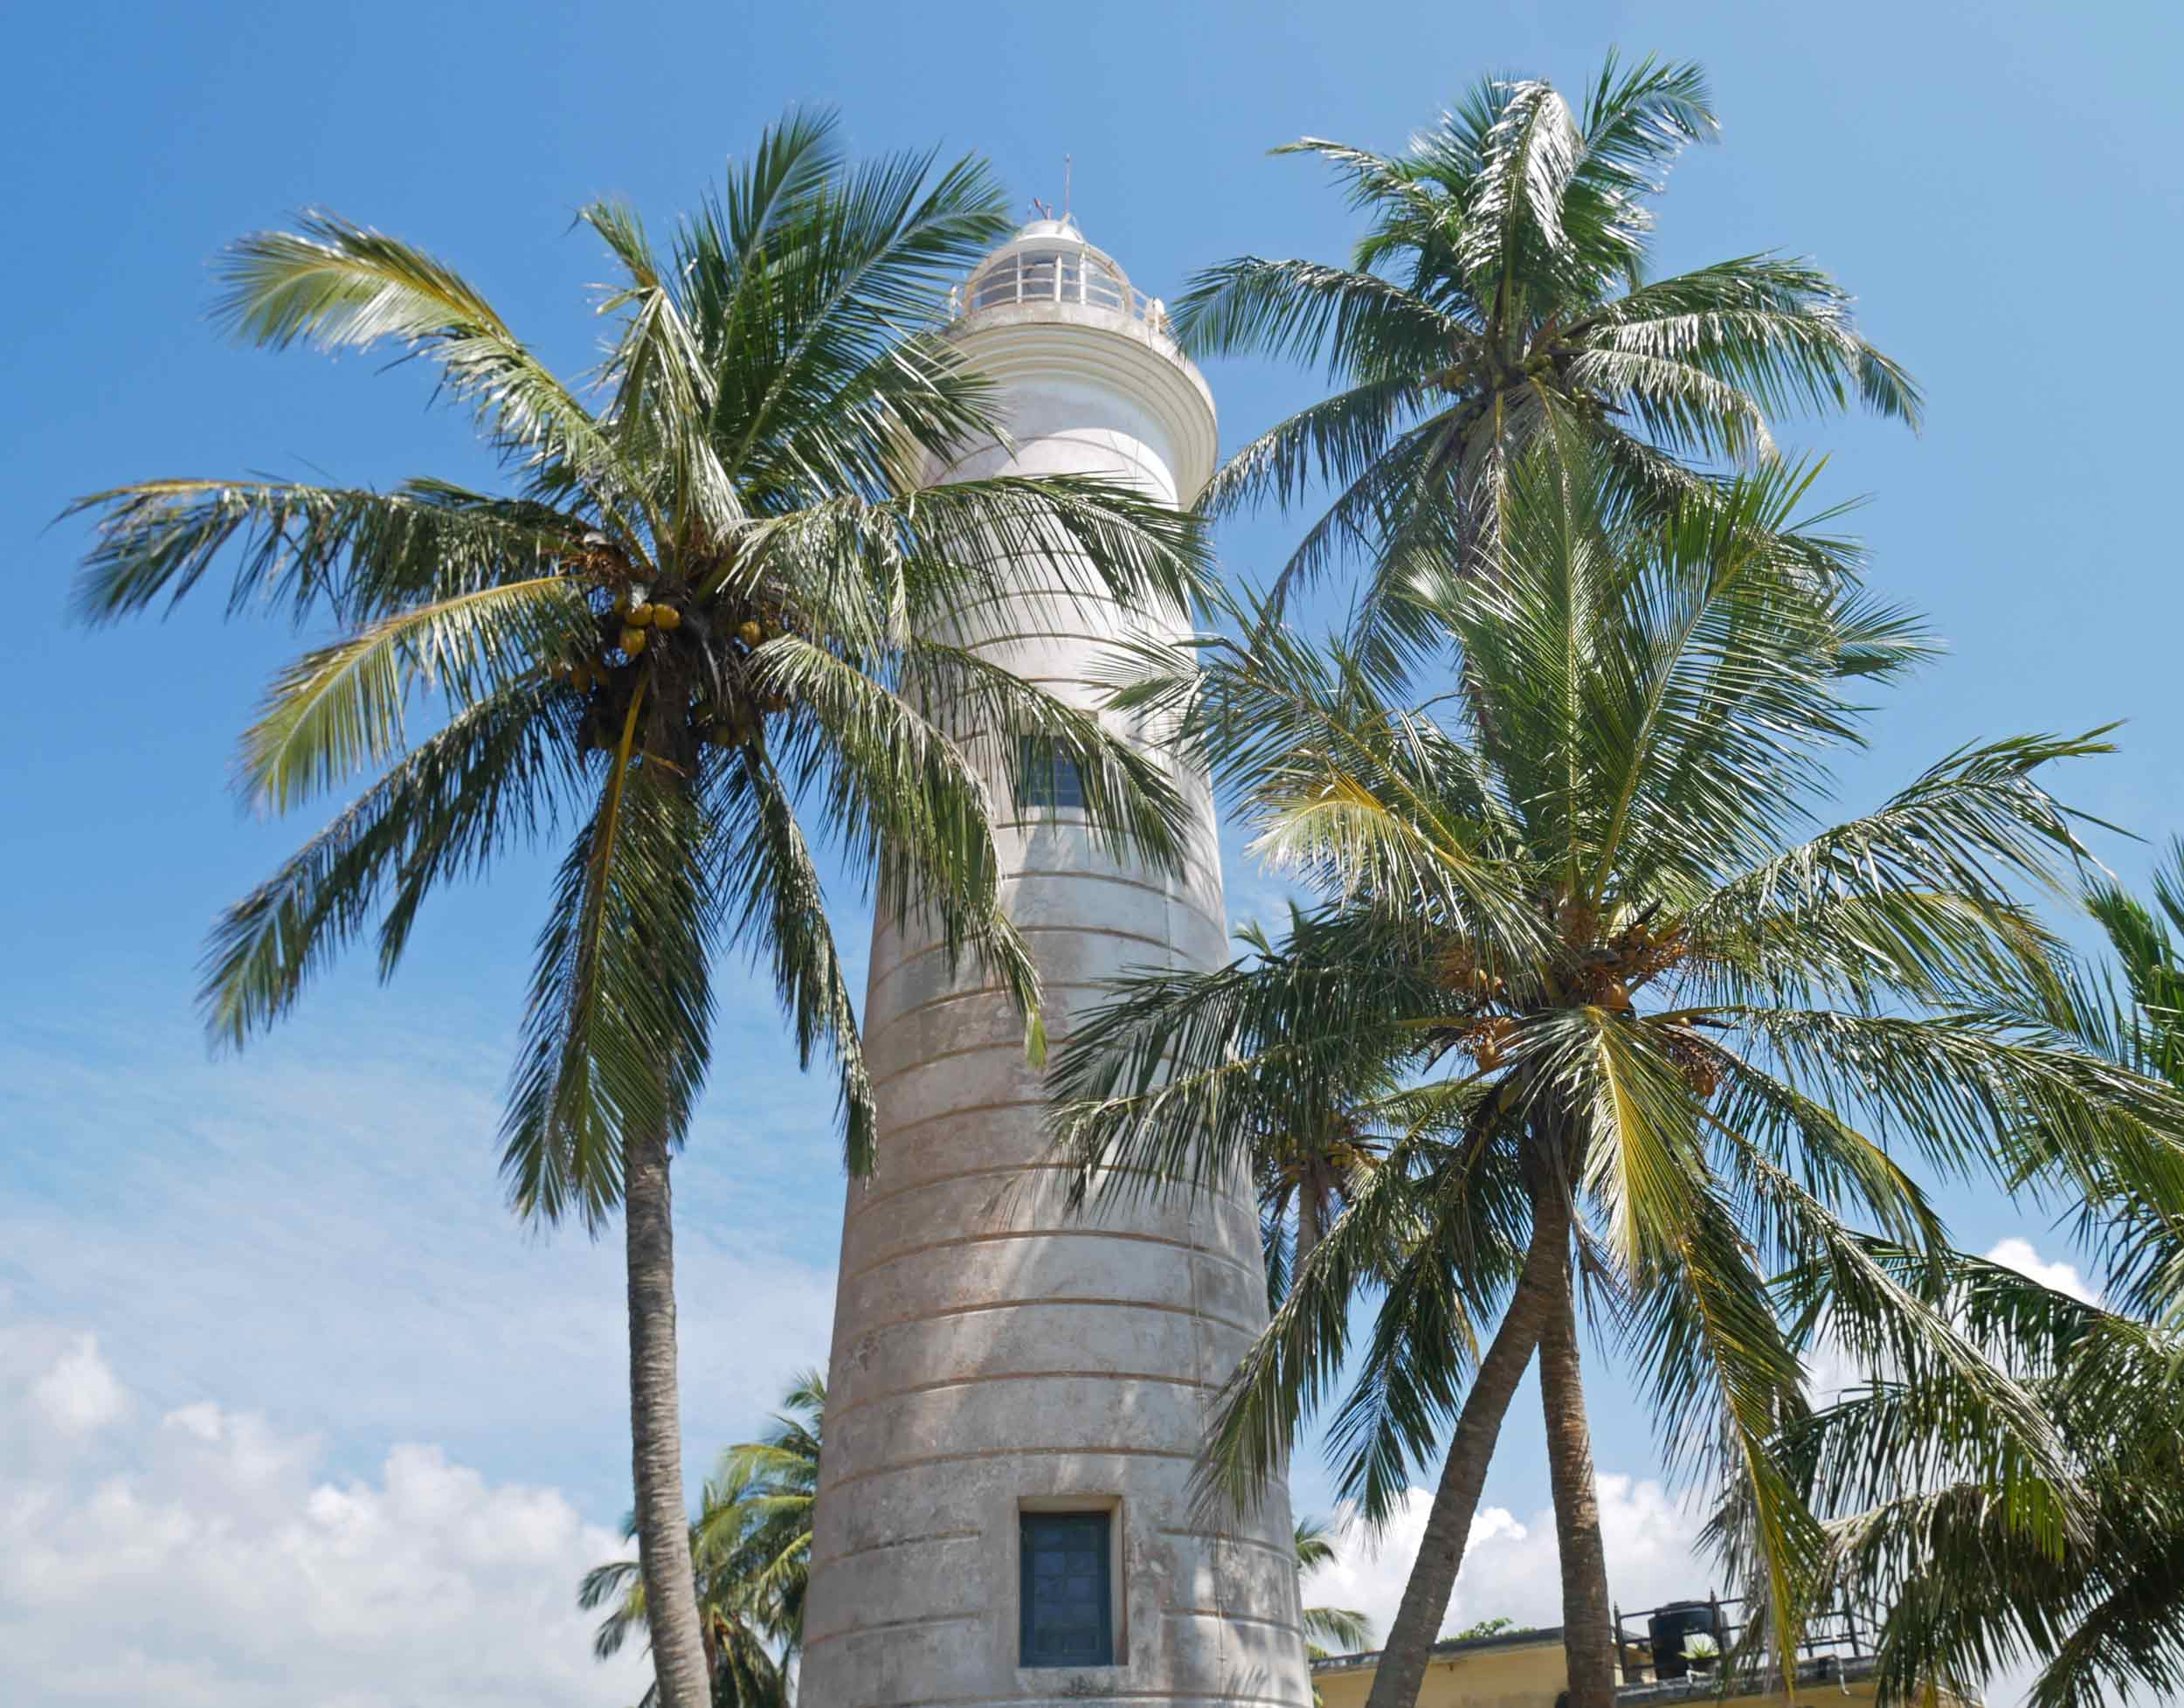 The charming lighthouse of Galle, flanked by swaying palms in the tropical heat (Dec 22).